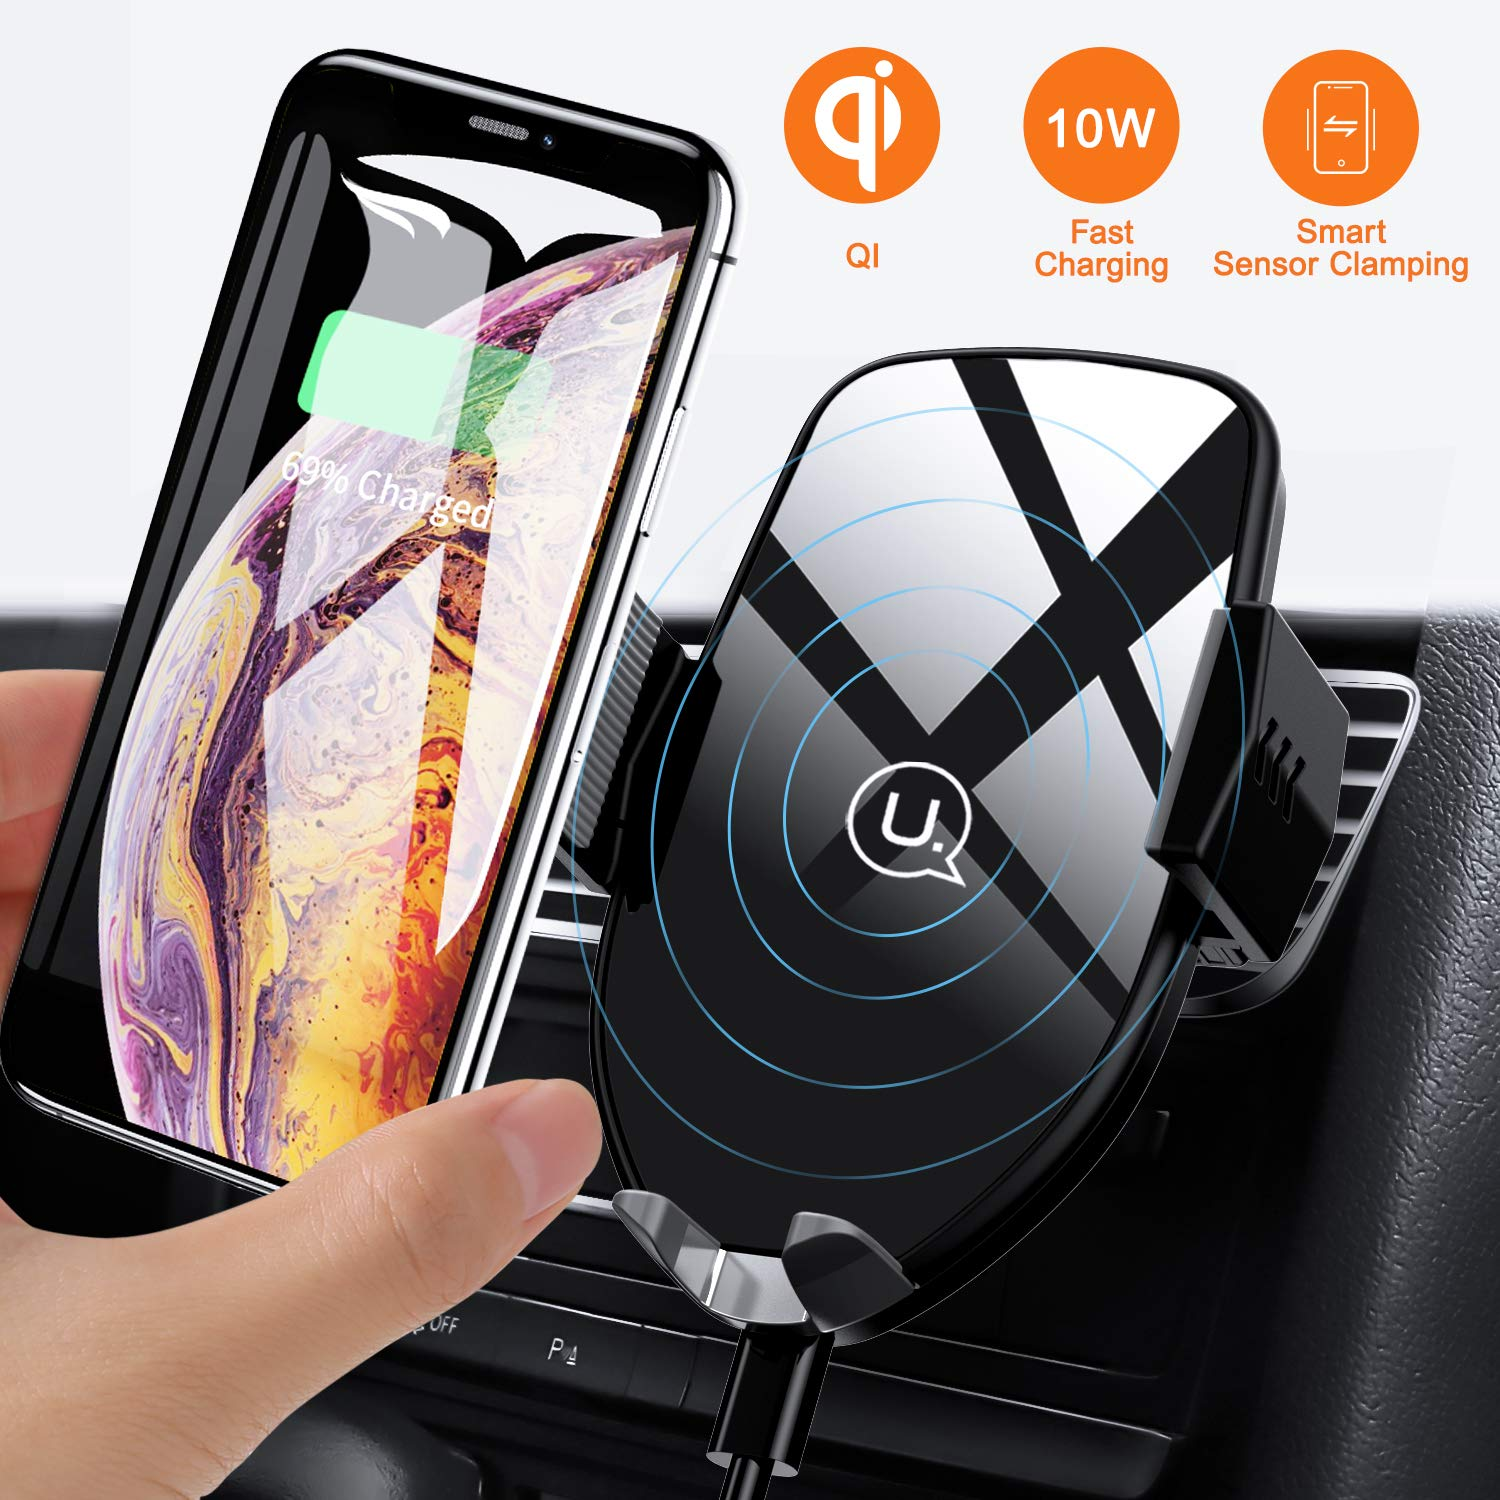 Wireless Car Charger Mount, USAMS Auto Clamping 10W Qi Fast Charging Car Air Vent Phone Holder for iPhone Xs Max/XR/XS/X/8 Plus, Samsung Galaxy S10/S10+/S9/S8/S8+ Edge Note 5 and More